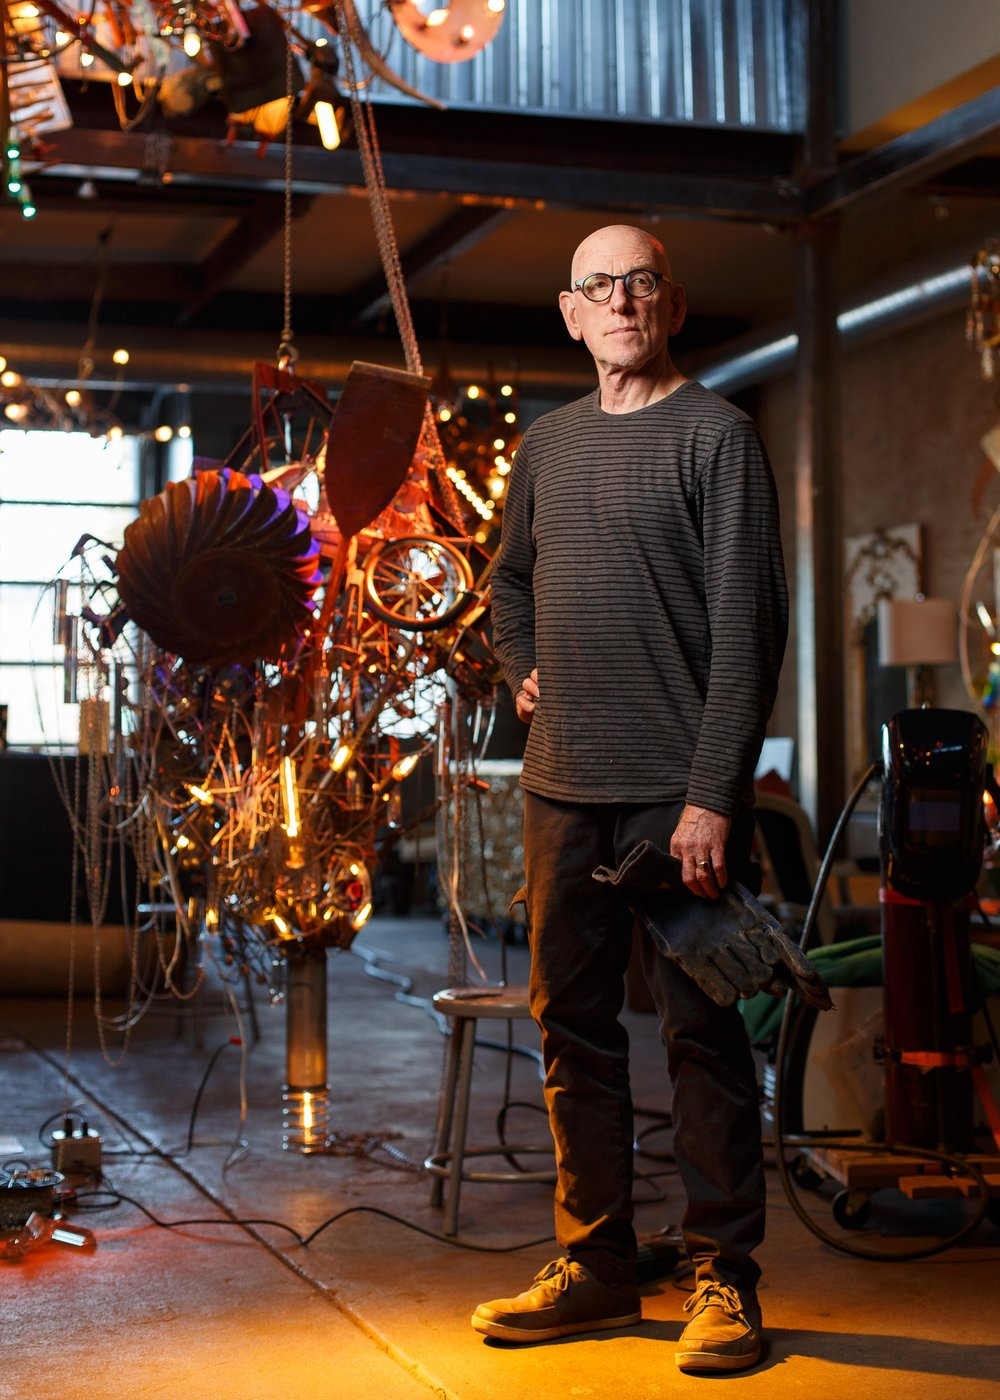 Warren Muller - What elevates Warren's work from mere craftsmanship is his visionary outlook. Warren rearranges objects and incorporates an iconography of myths, fairy tales, and personal idiosyncrasies into his lit sculptures. There is a sense of joy and play in his art that is infectious. It triggers a ripple effect and consequently his fame has spread largely through word-of-mouth rather than the conventional media outlets.